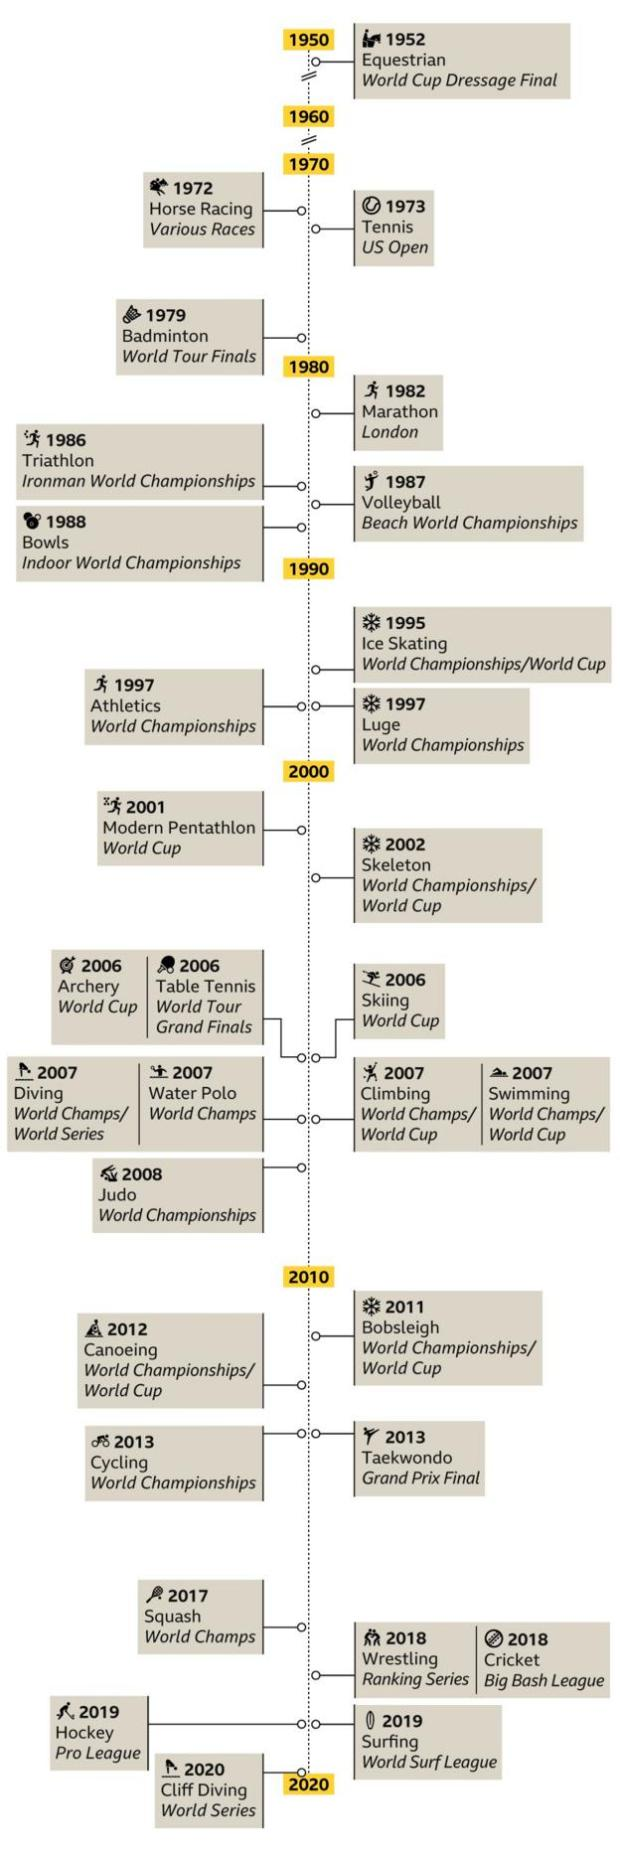 Years sports started paying men and women equal prize money